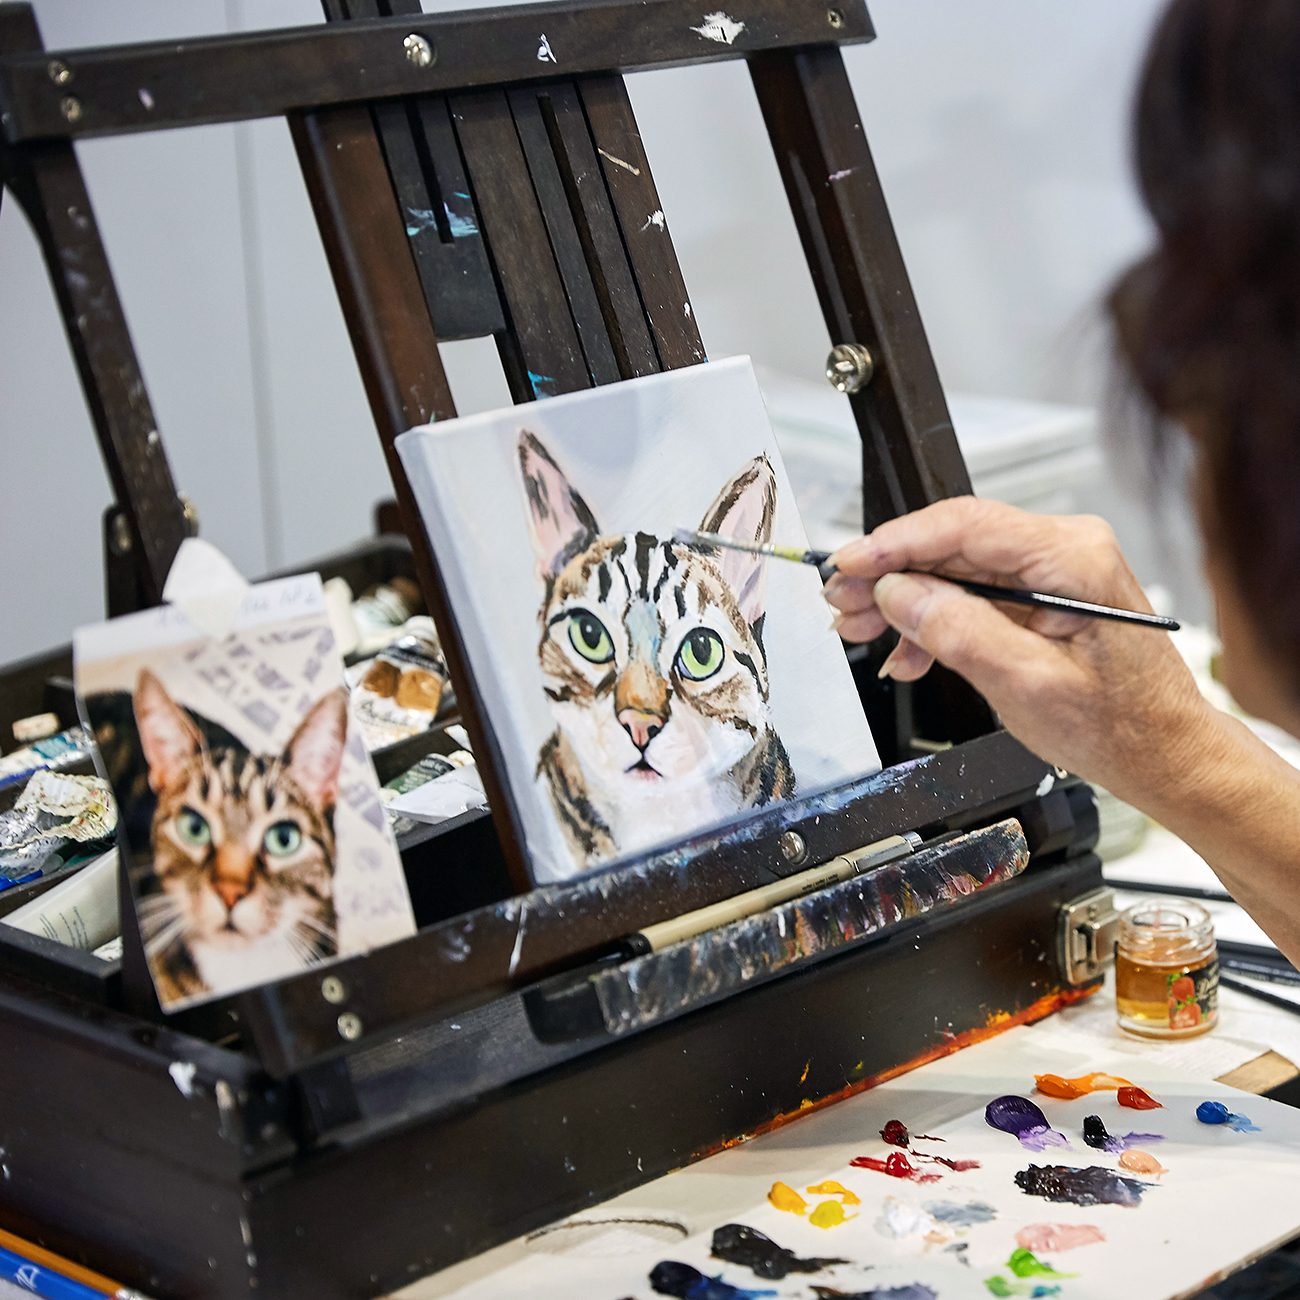 Artists hand painting cat portraits on easel